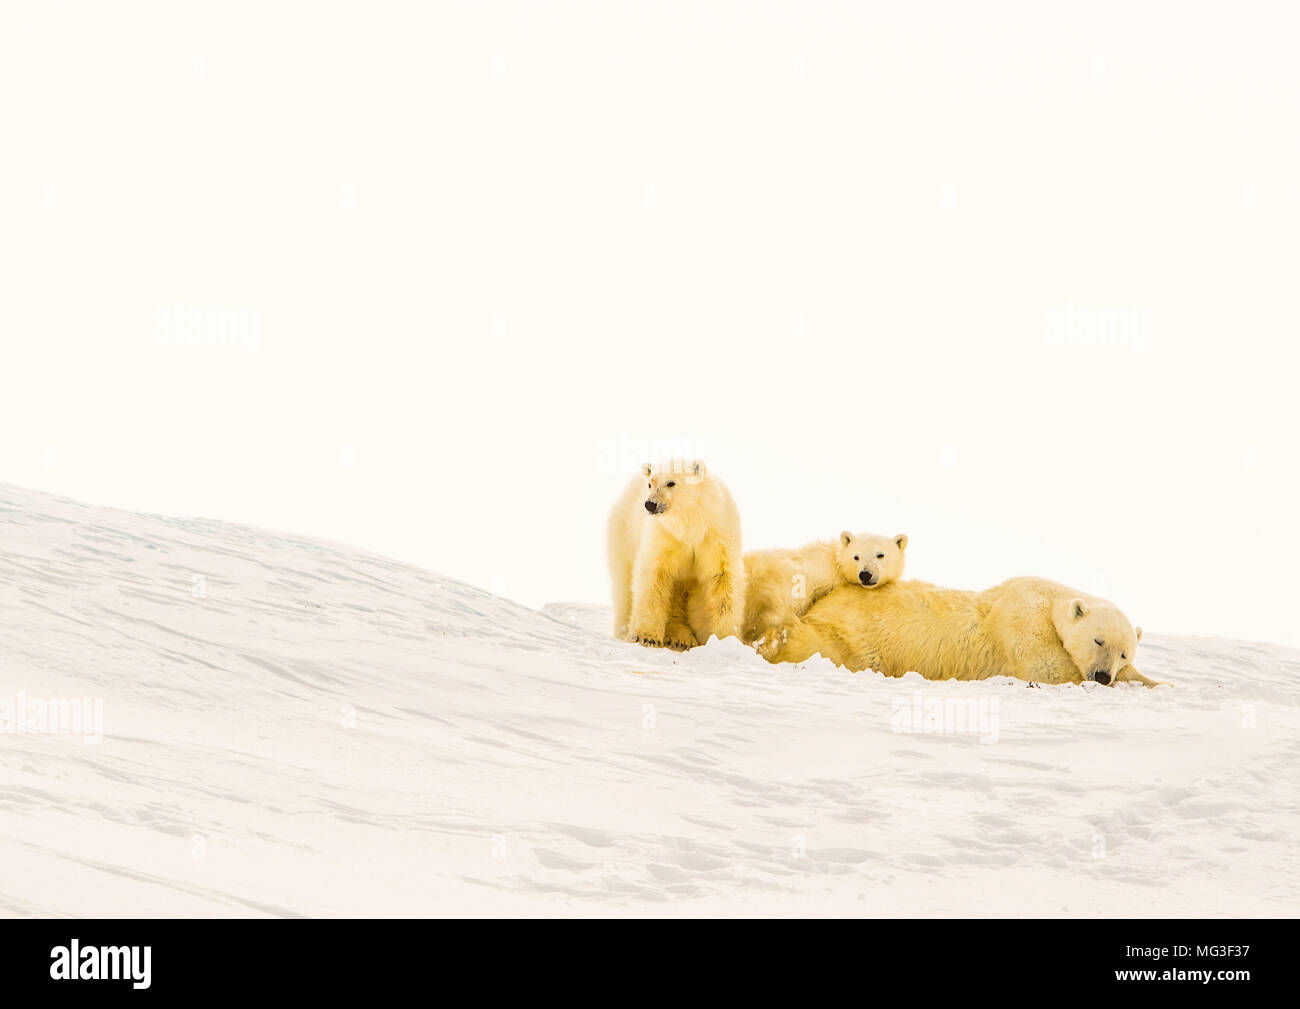 Mother polar bear and 2 yearling cubs sleeping on an iceberg, Baffin Island, Canada, nunavut, arctic. - Stock Image